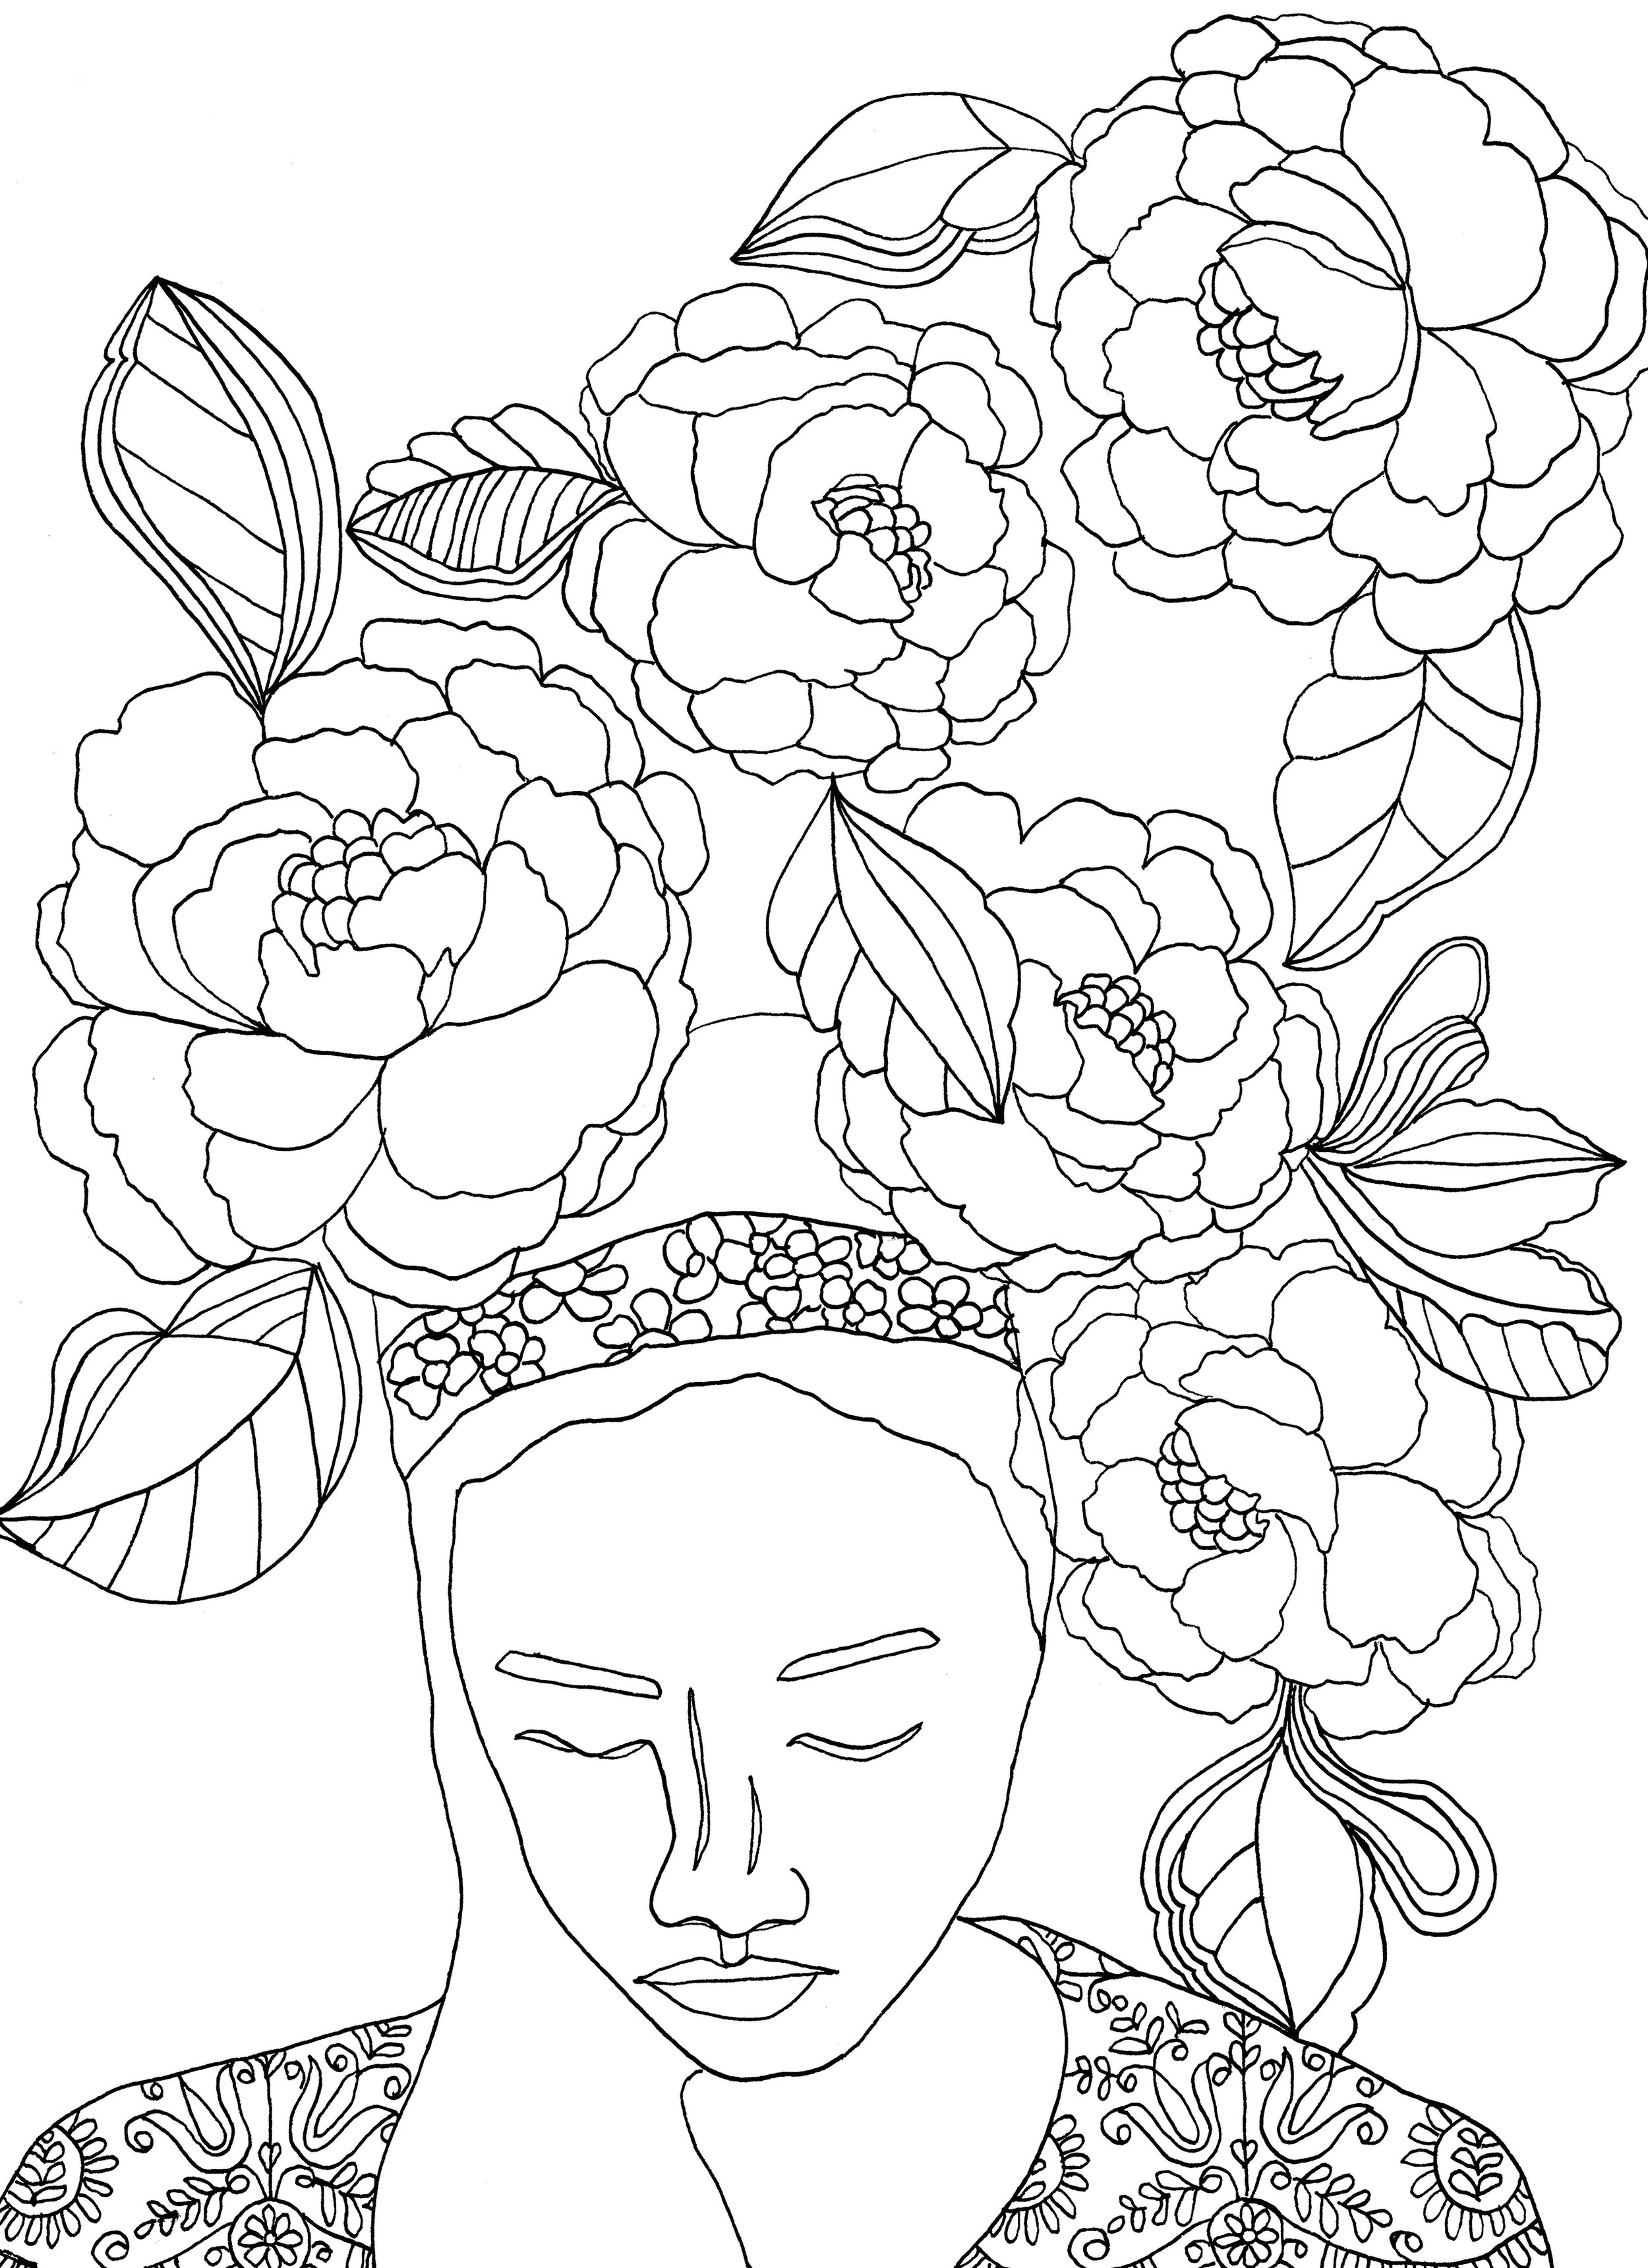 - Free Adult Coloring Book Pages — REBECCA MCFARLAND